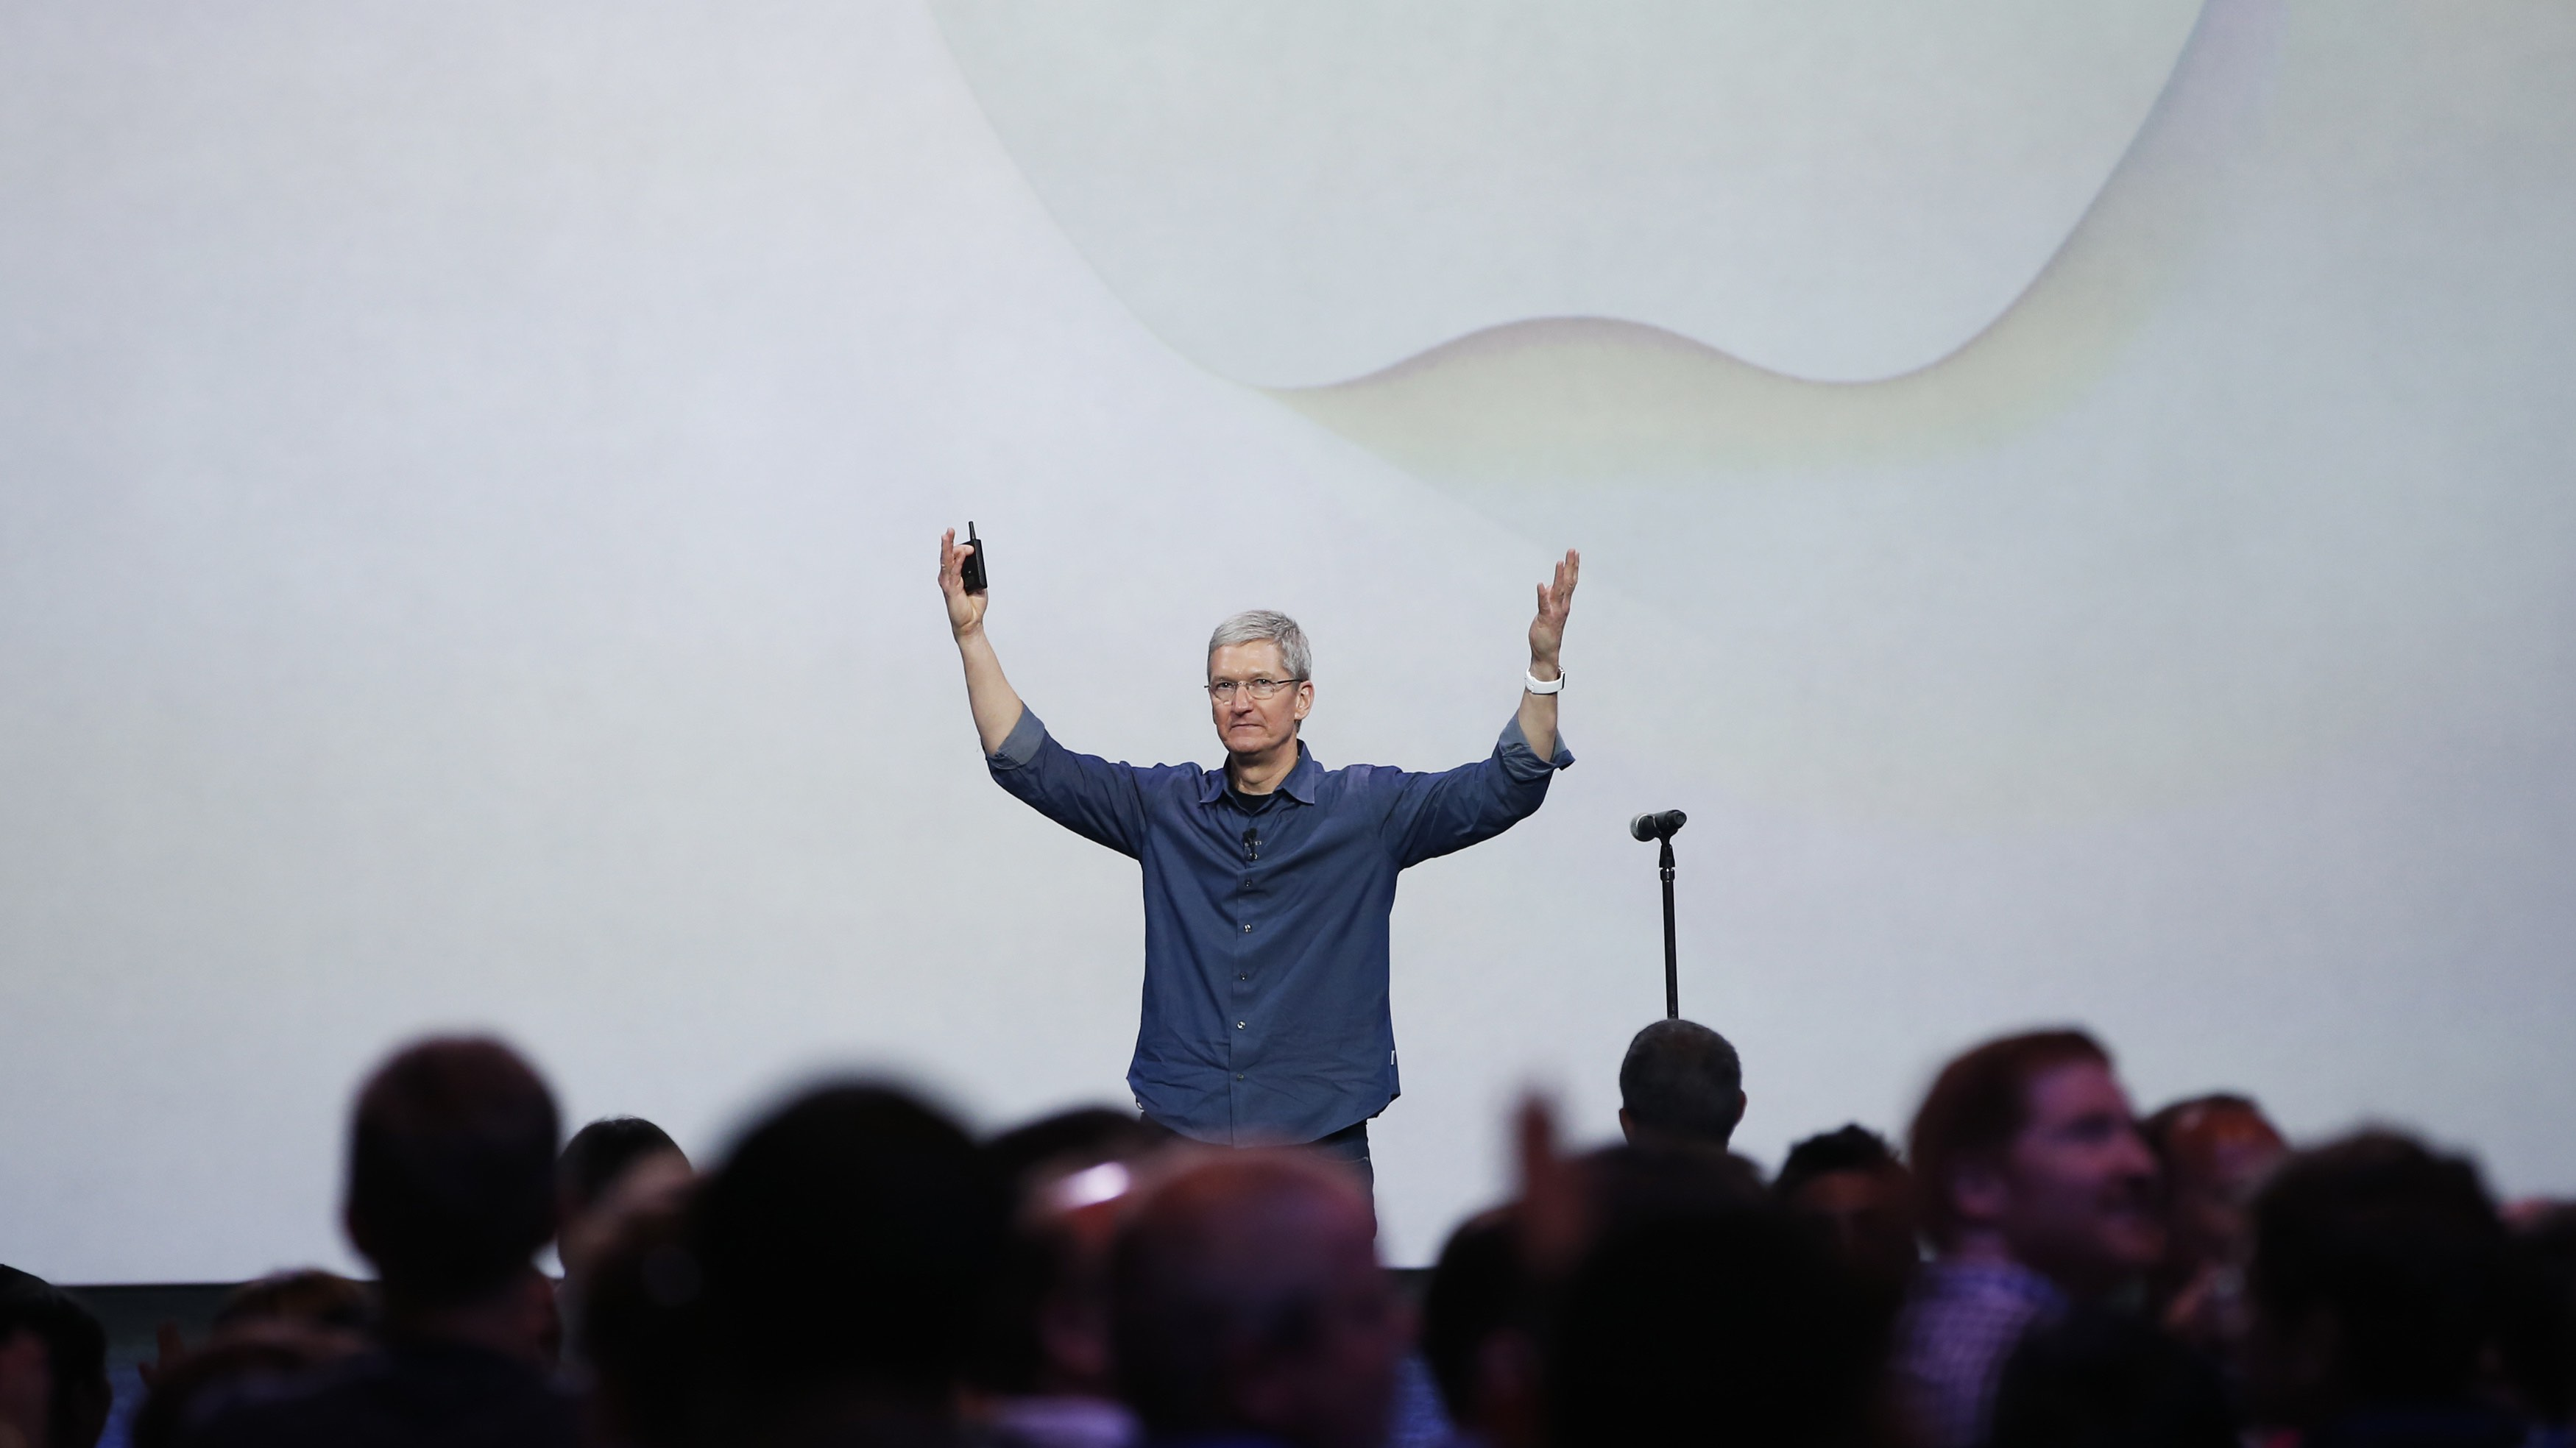 Apple CEO Tim Cook greets the audience during an Apple event announcing the iPhone 6 and the Apple Watch at the Flint Center in Cupertino, California, September 9, 2014. REUTERS/Stephen Lam (United States - Tags: SCIENCE TECHNOLOGY BUSINESS)